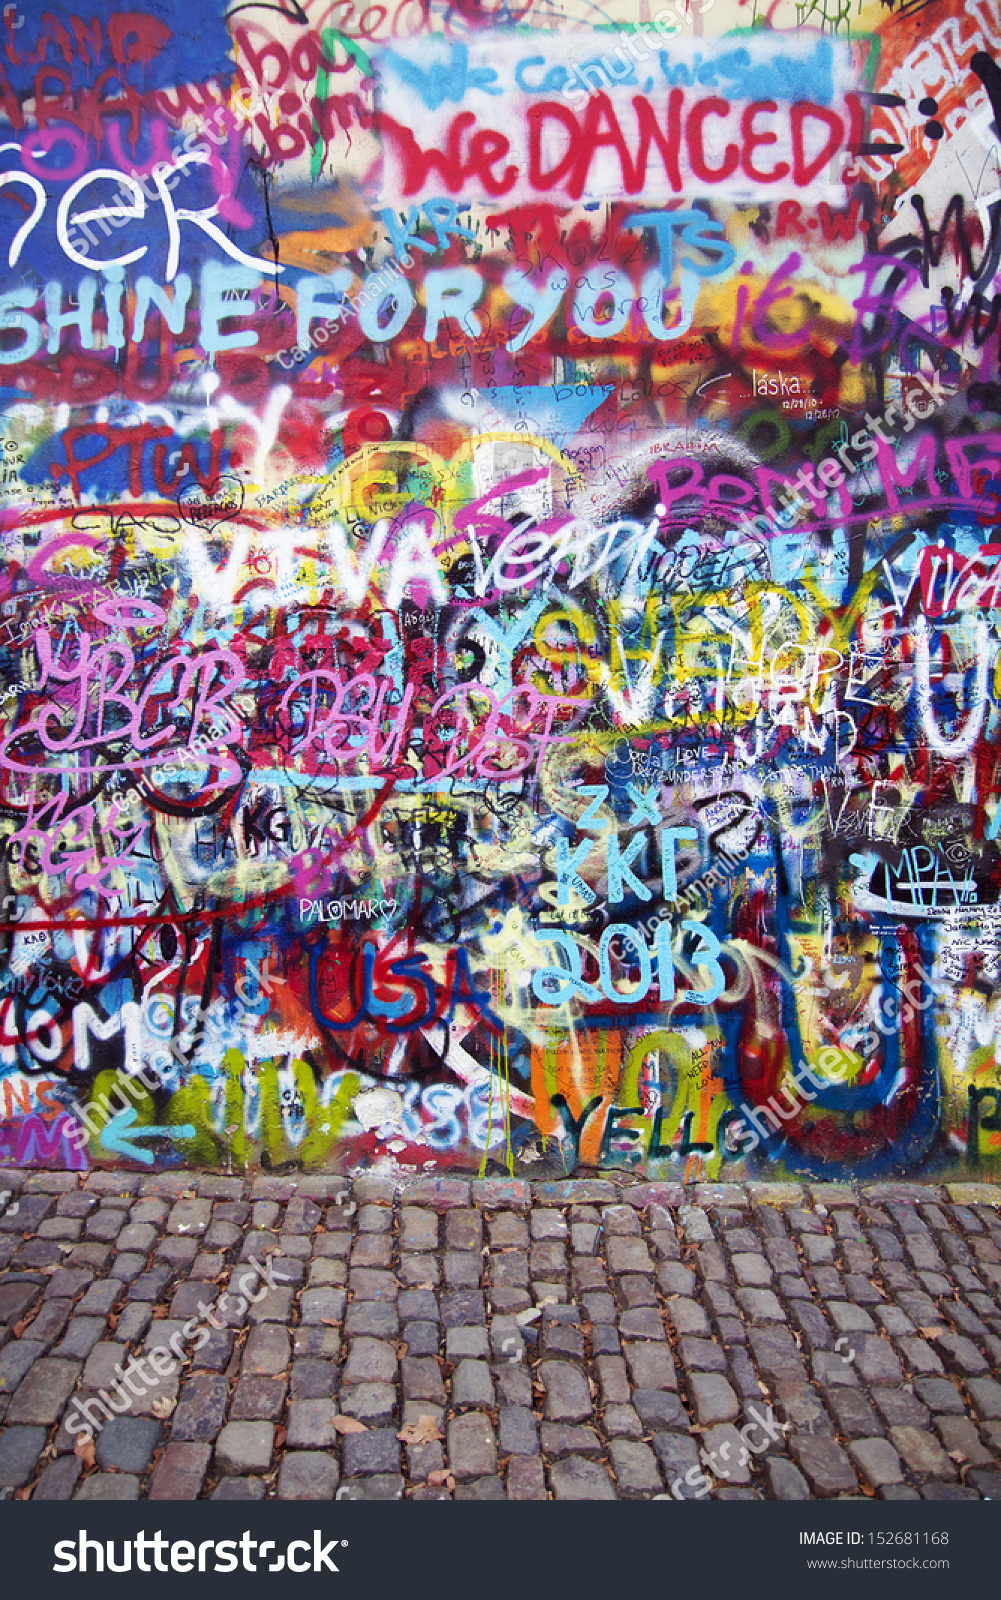 Prague czech republic april 12 the lennon wall since the 1980s is filled with john lennon inspired graffiti and pieces of lyrics from beatles songs on